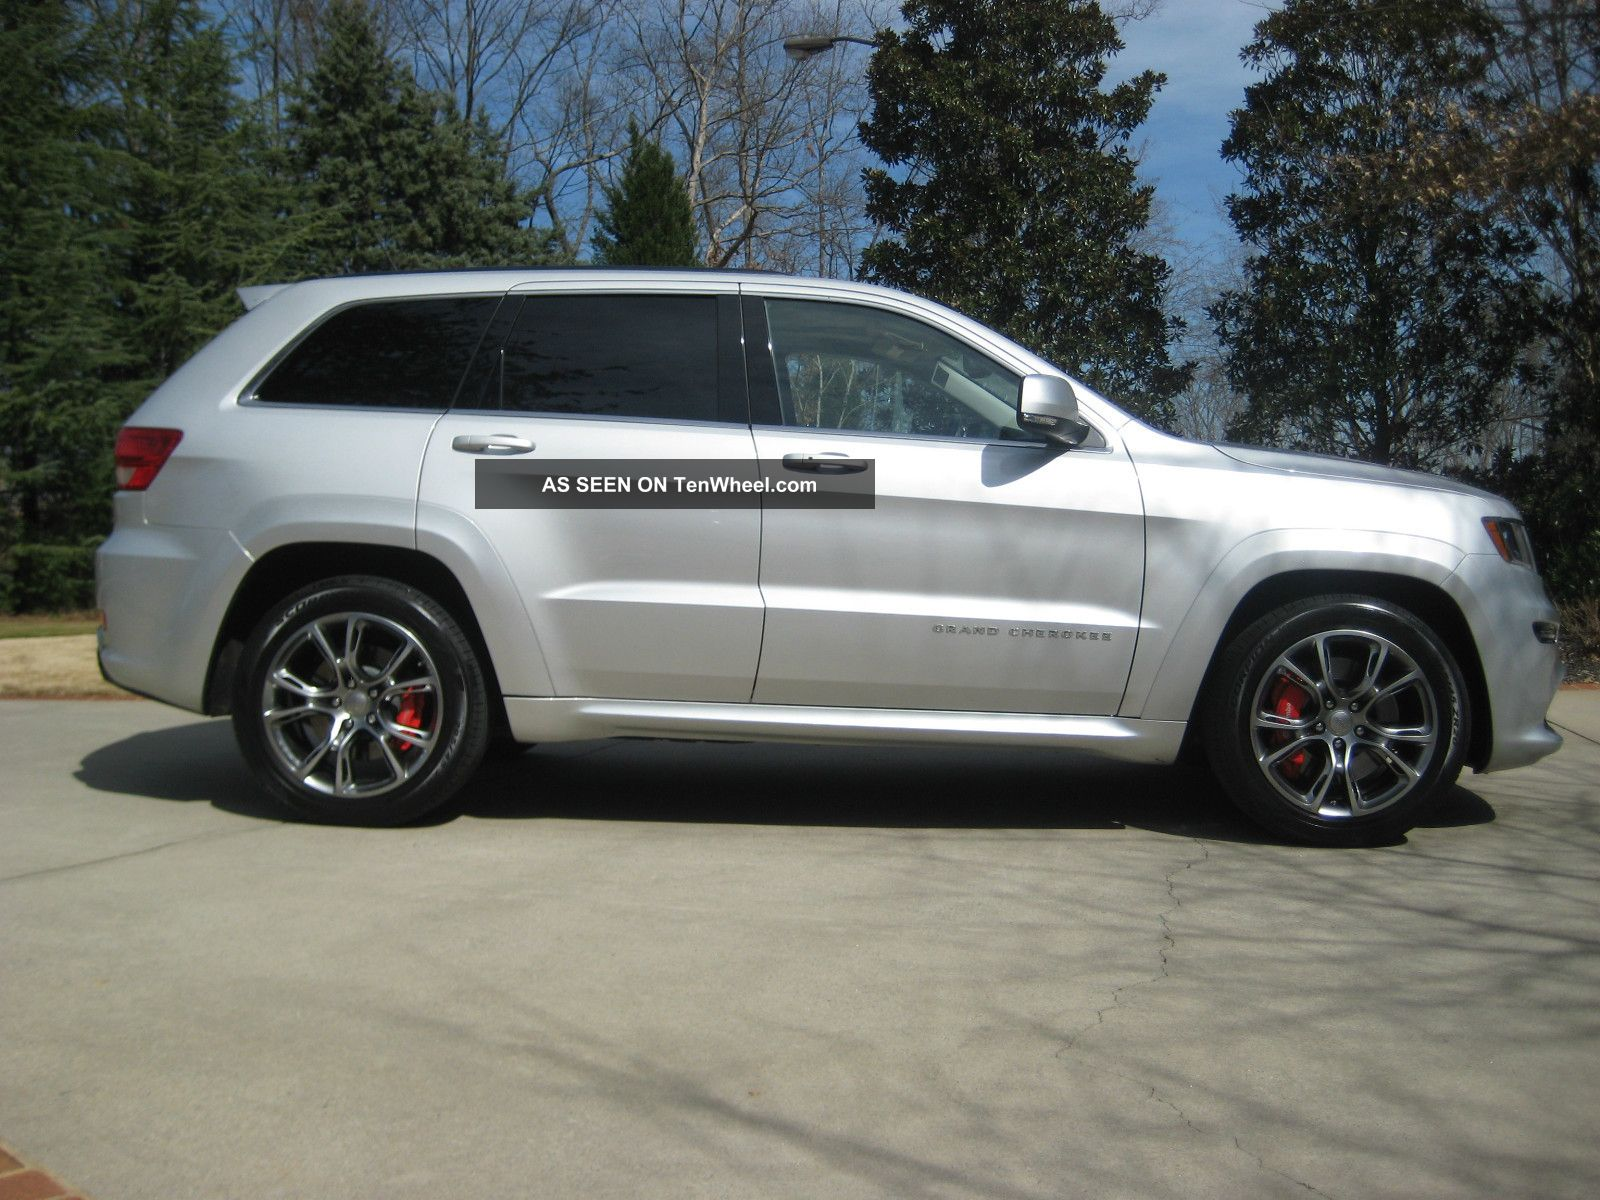 2012 jeep grand cherokee srt8 grand cherokee photo. Cars Review. Best American Auto & Cars Review